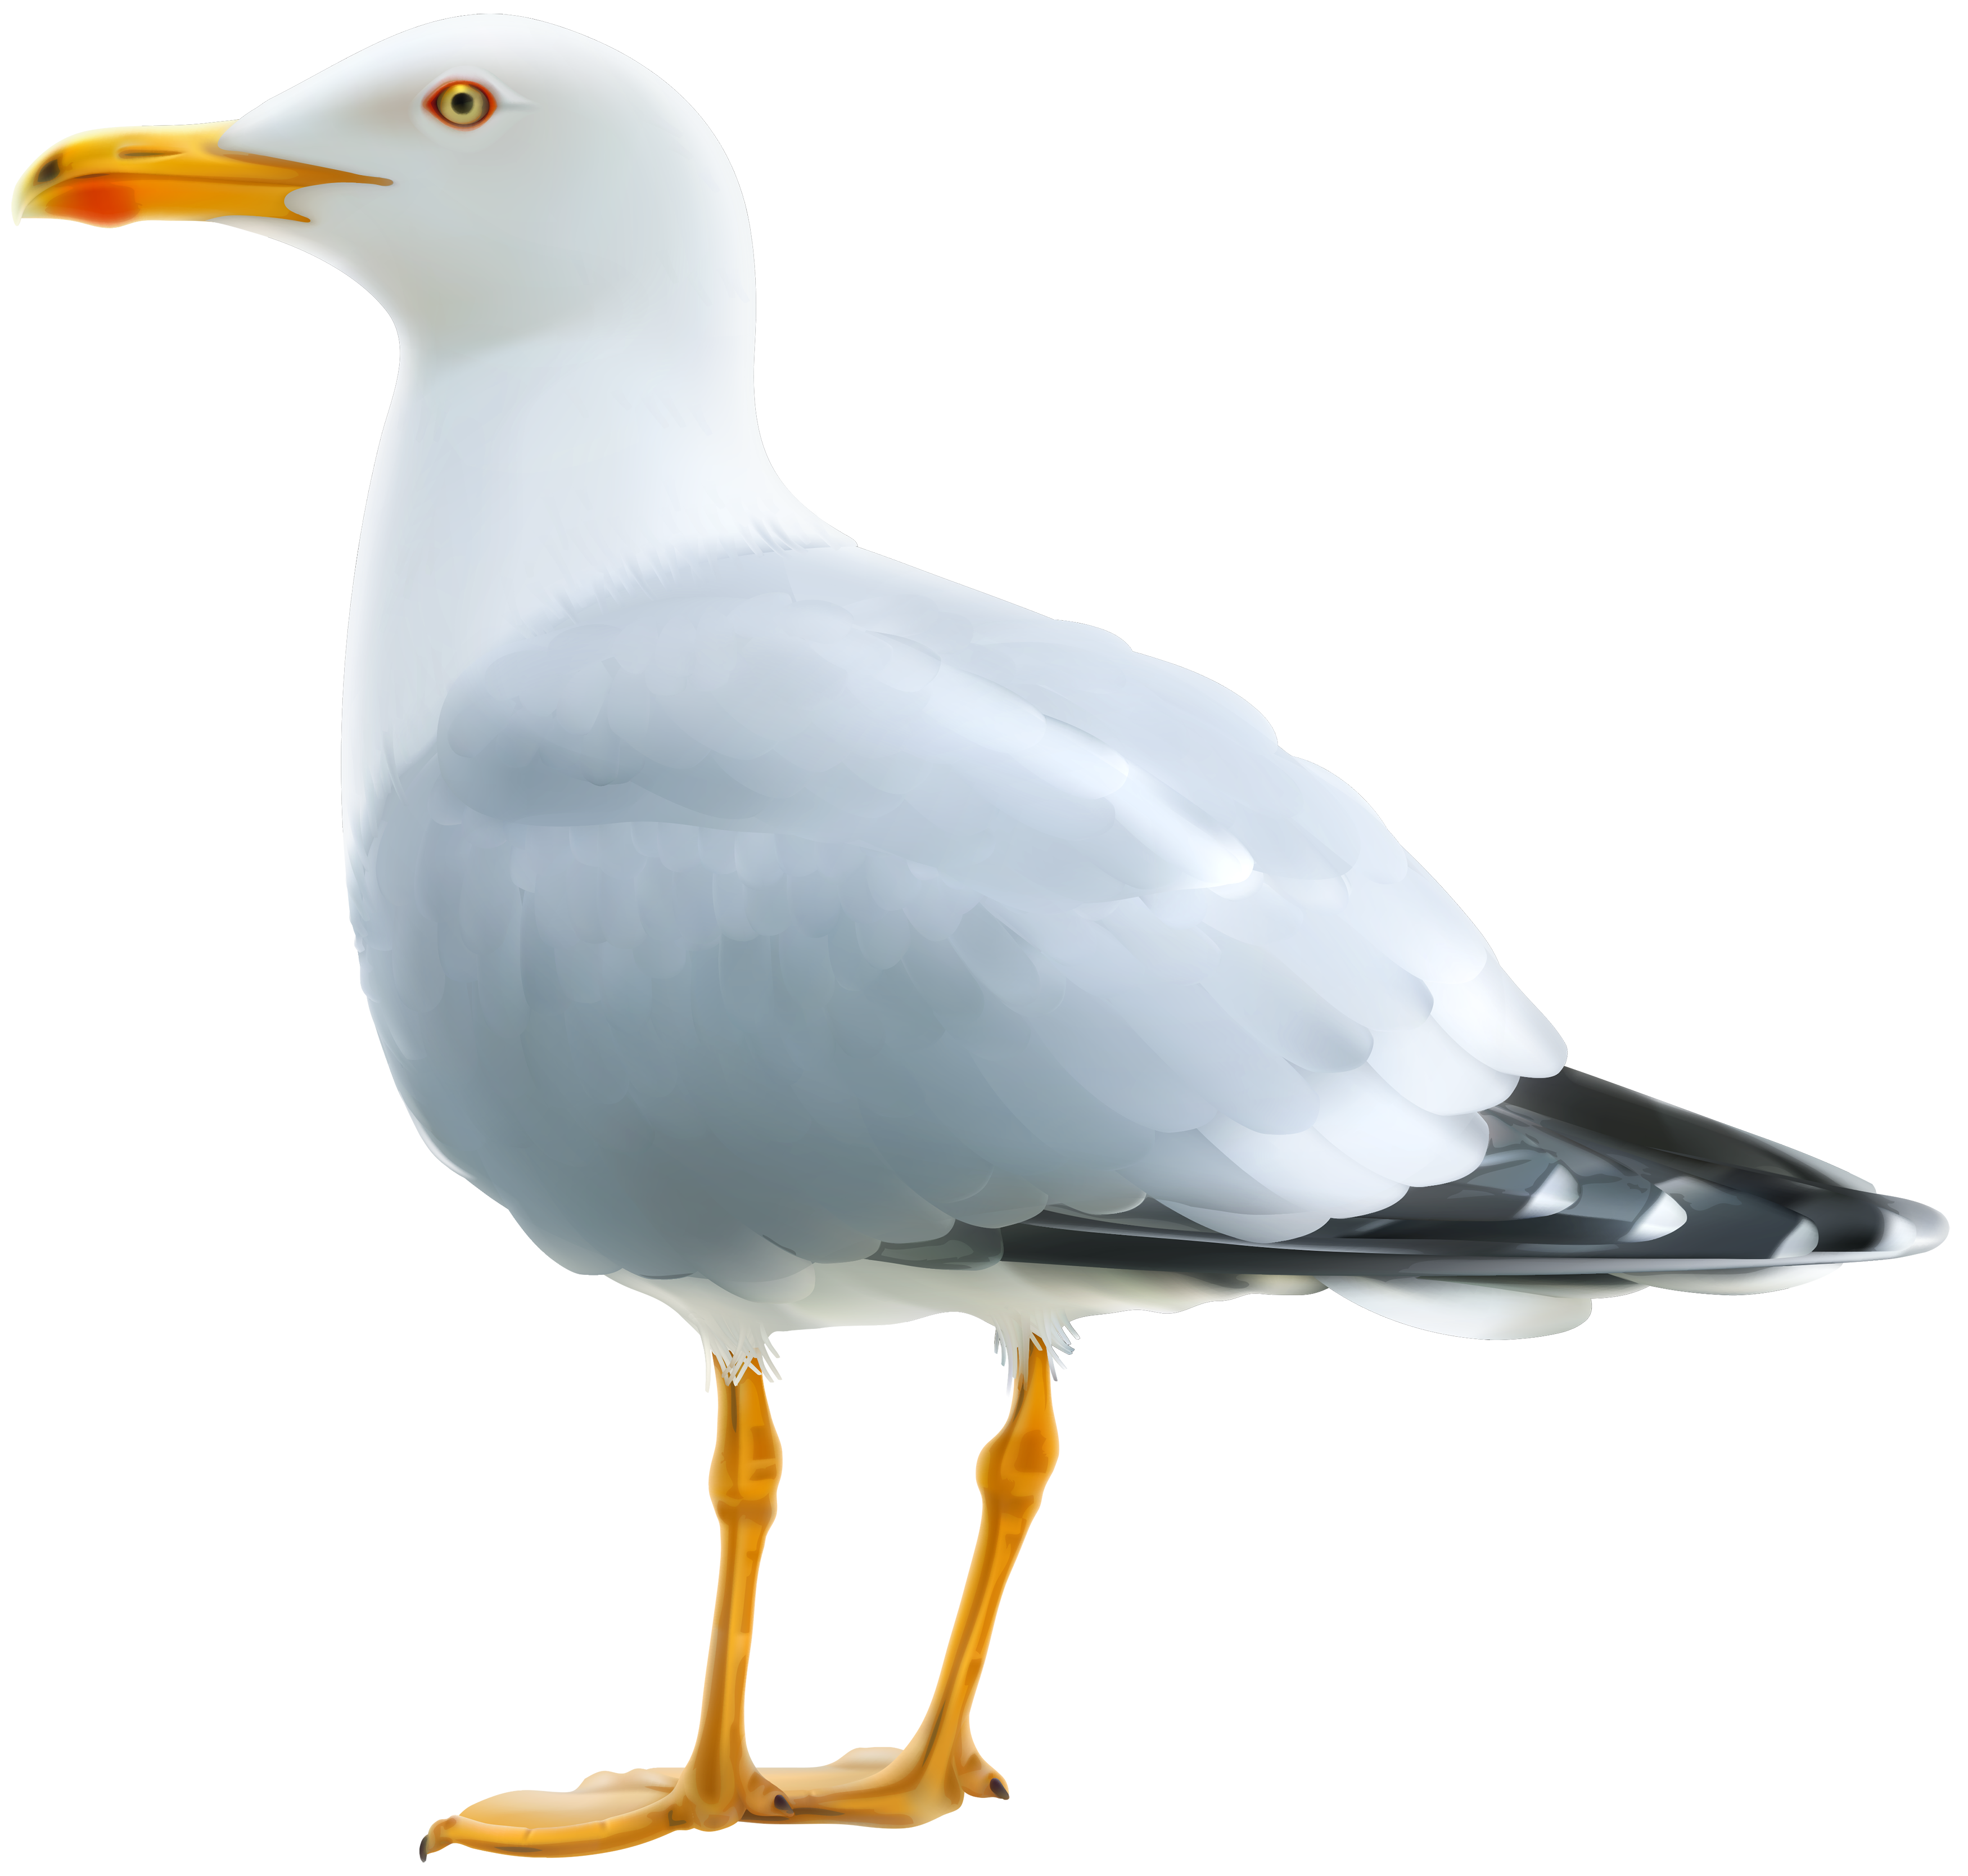 Free clipart downloads seagulls jpg royalty free Seagull PNG Clipart Image | Gallery Yopriceville - High-Quality ... jpg royalty free